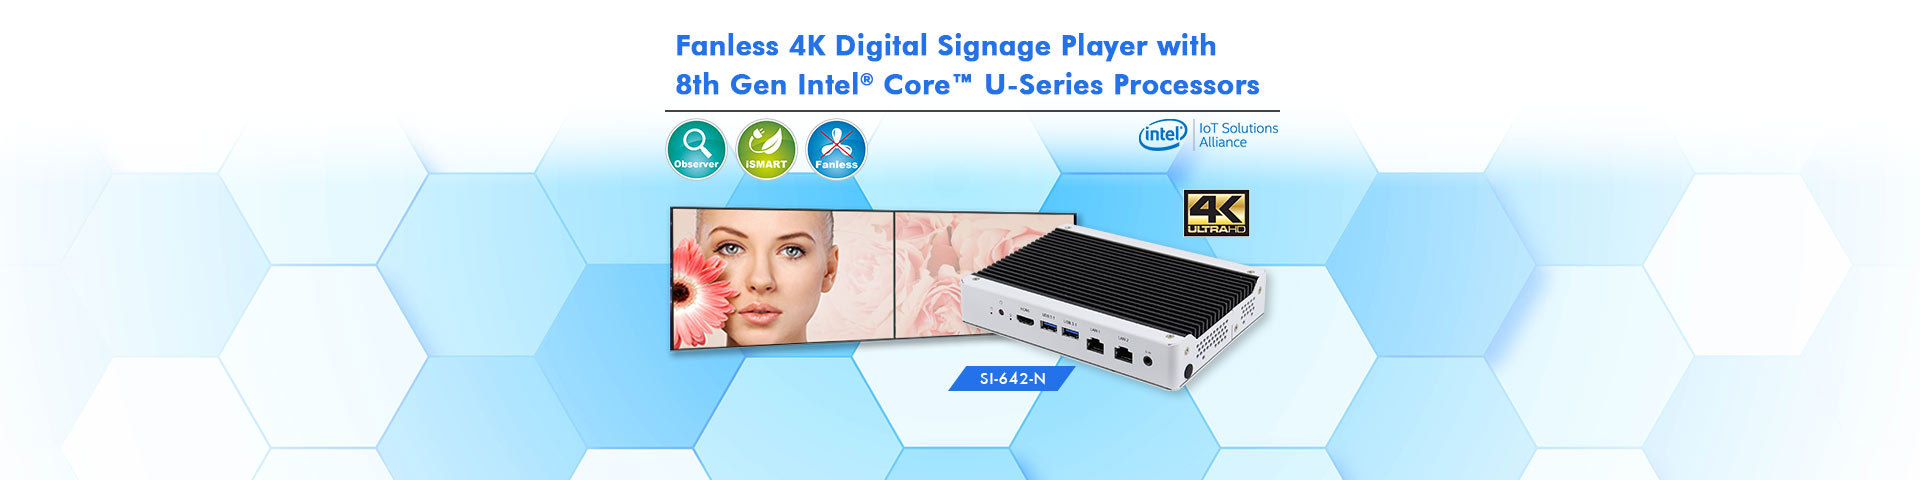 Fanless 4K Digital Signage Player with 8th Gen Intel® Core™ U-Series Processors